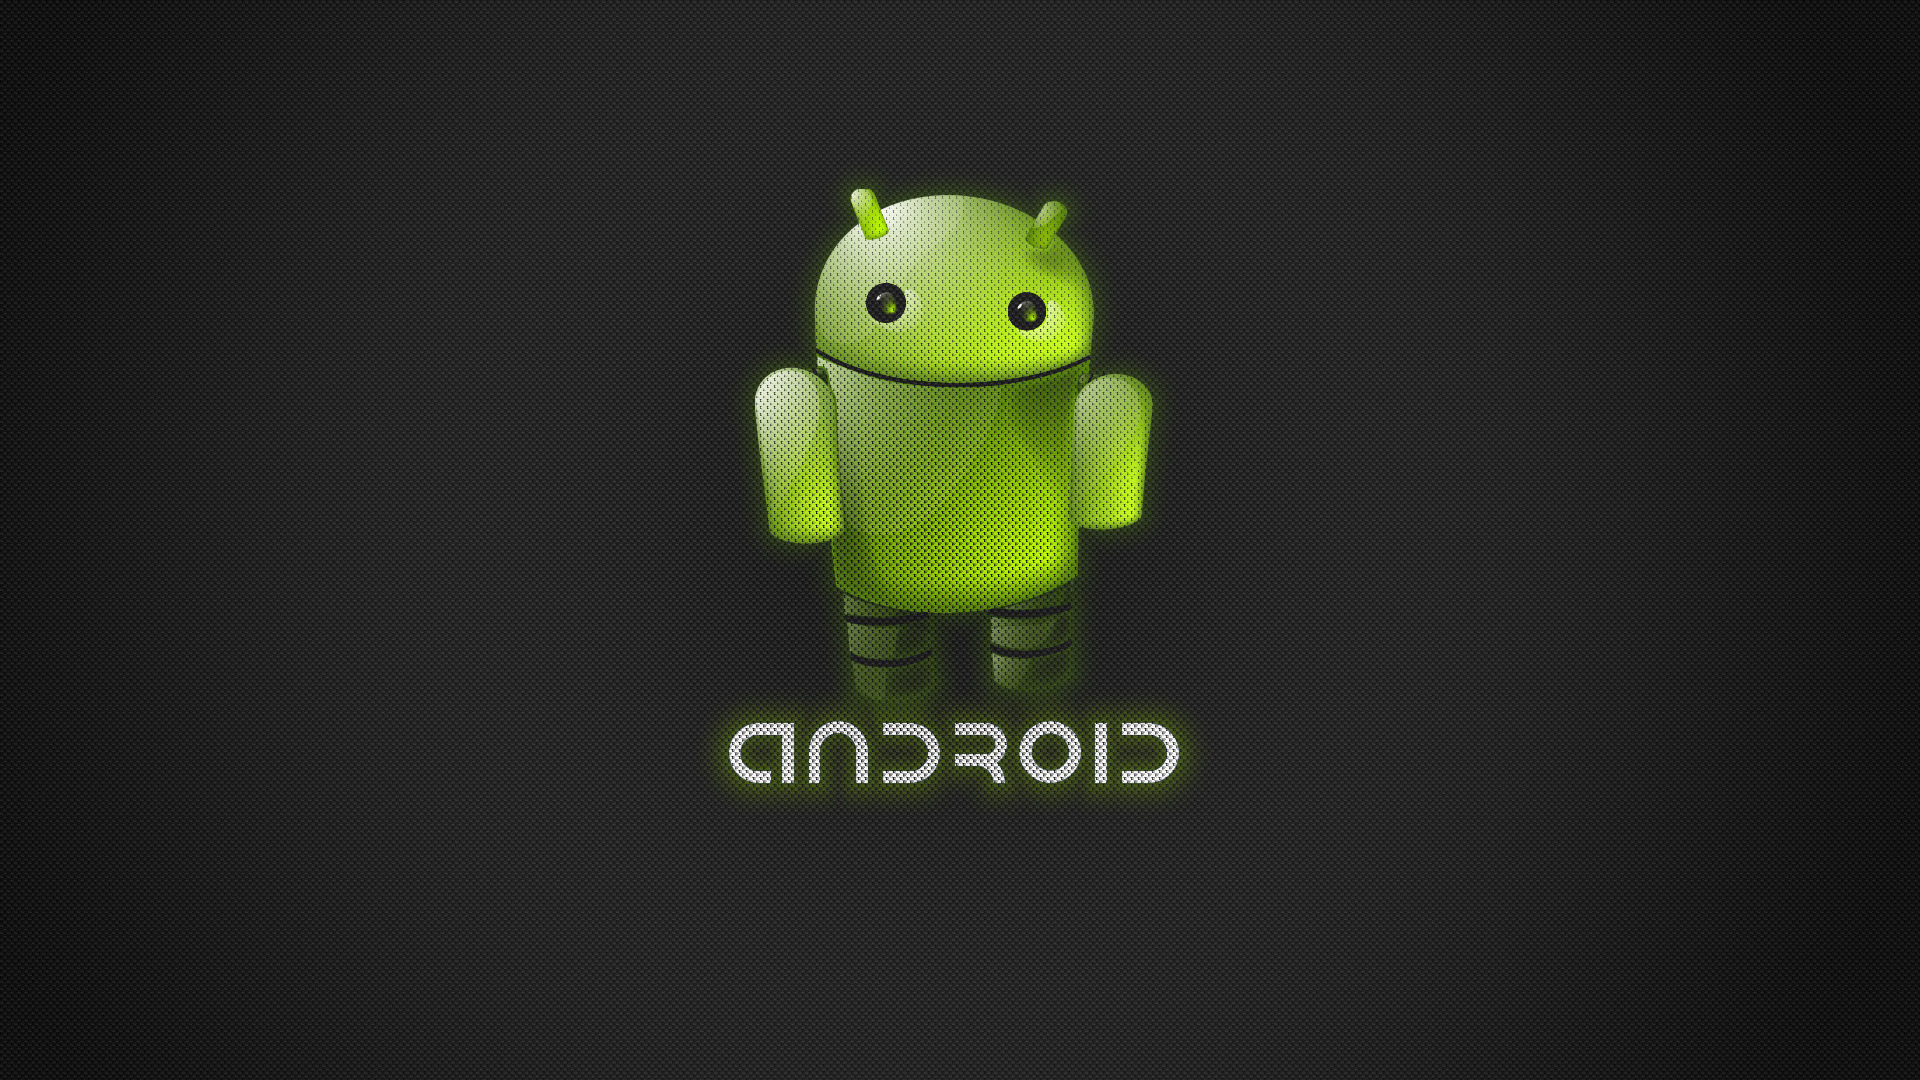 Technology - Android Wallpaper